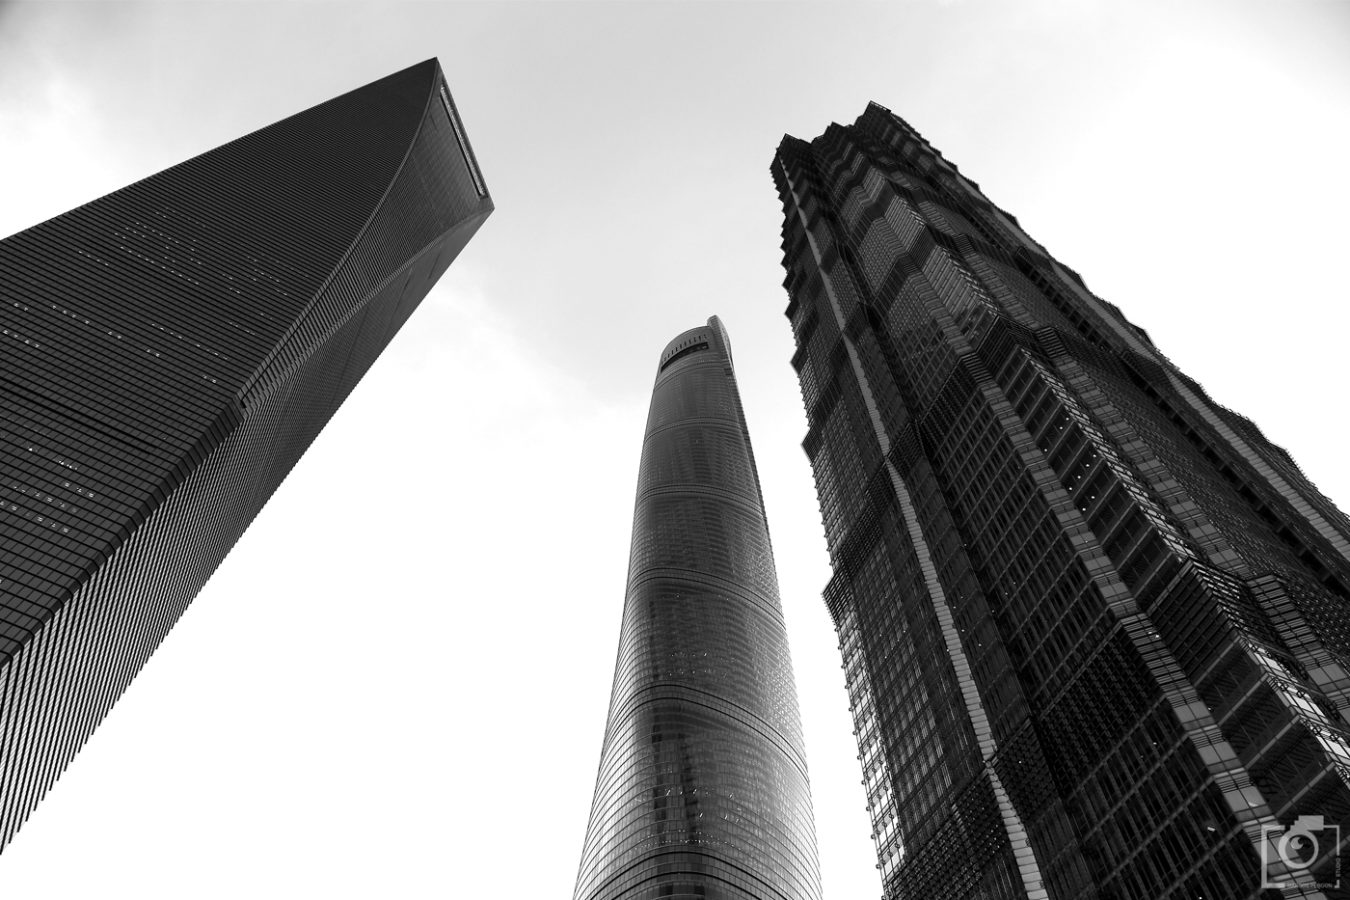 Shanghai World Financial Center - Architecture